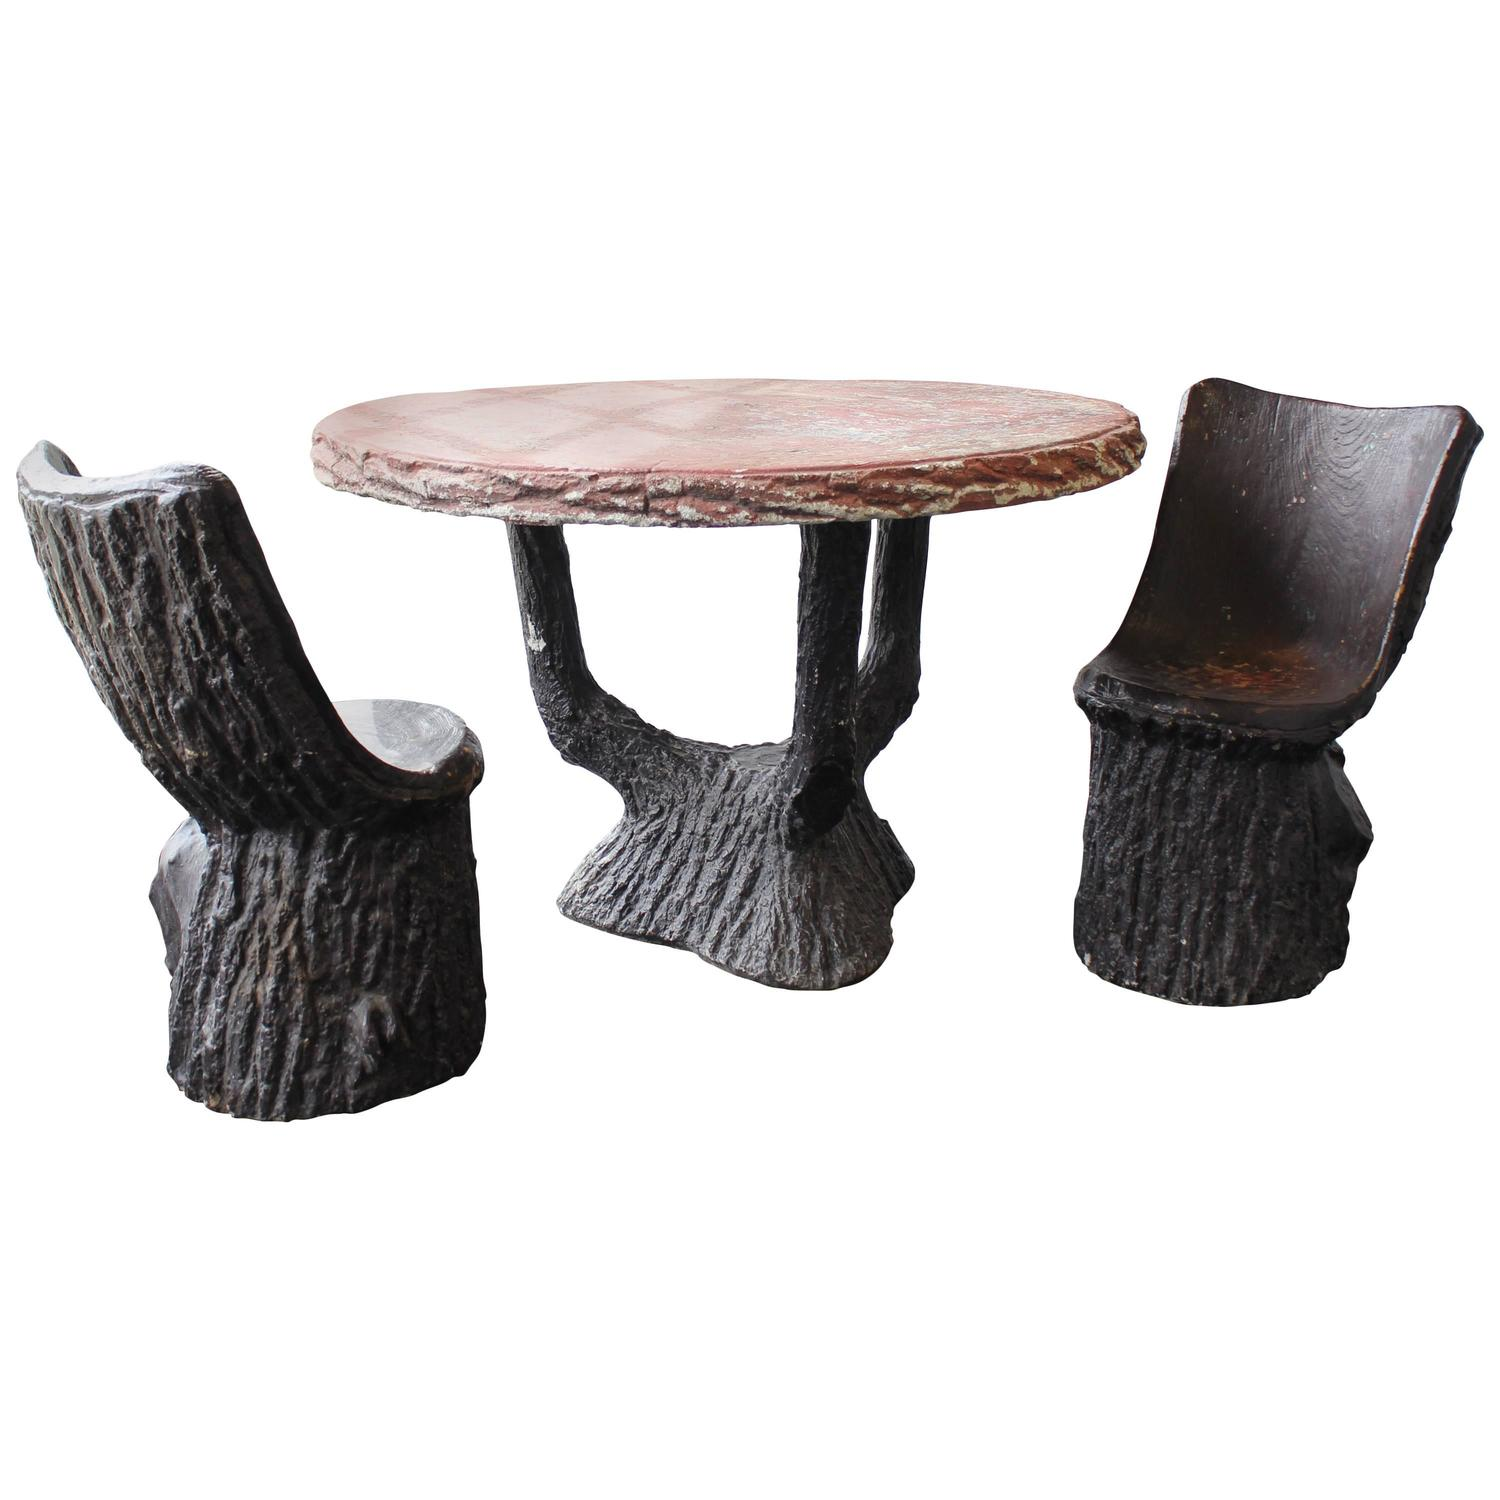 19th Century French Faux Bois Cement Garden Table and Chairs For